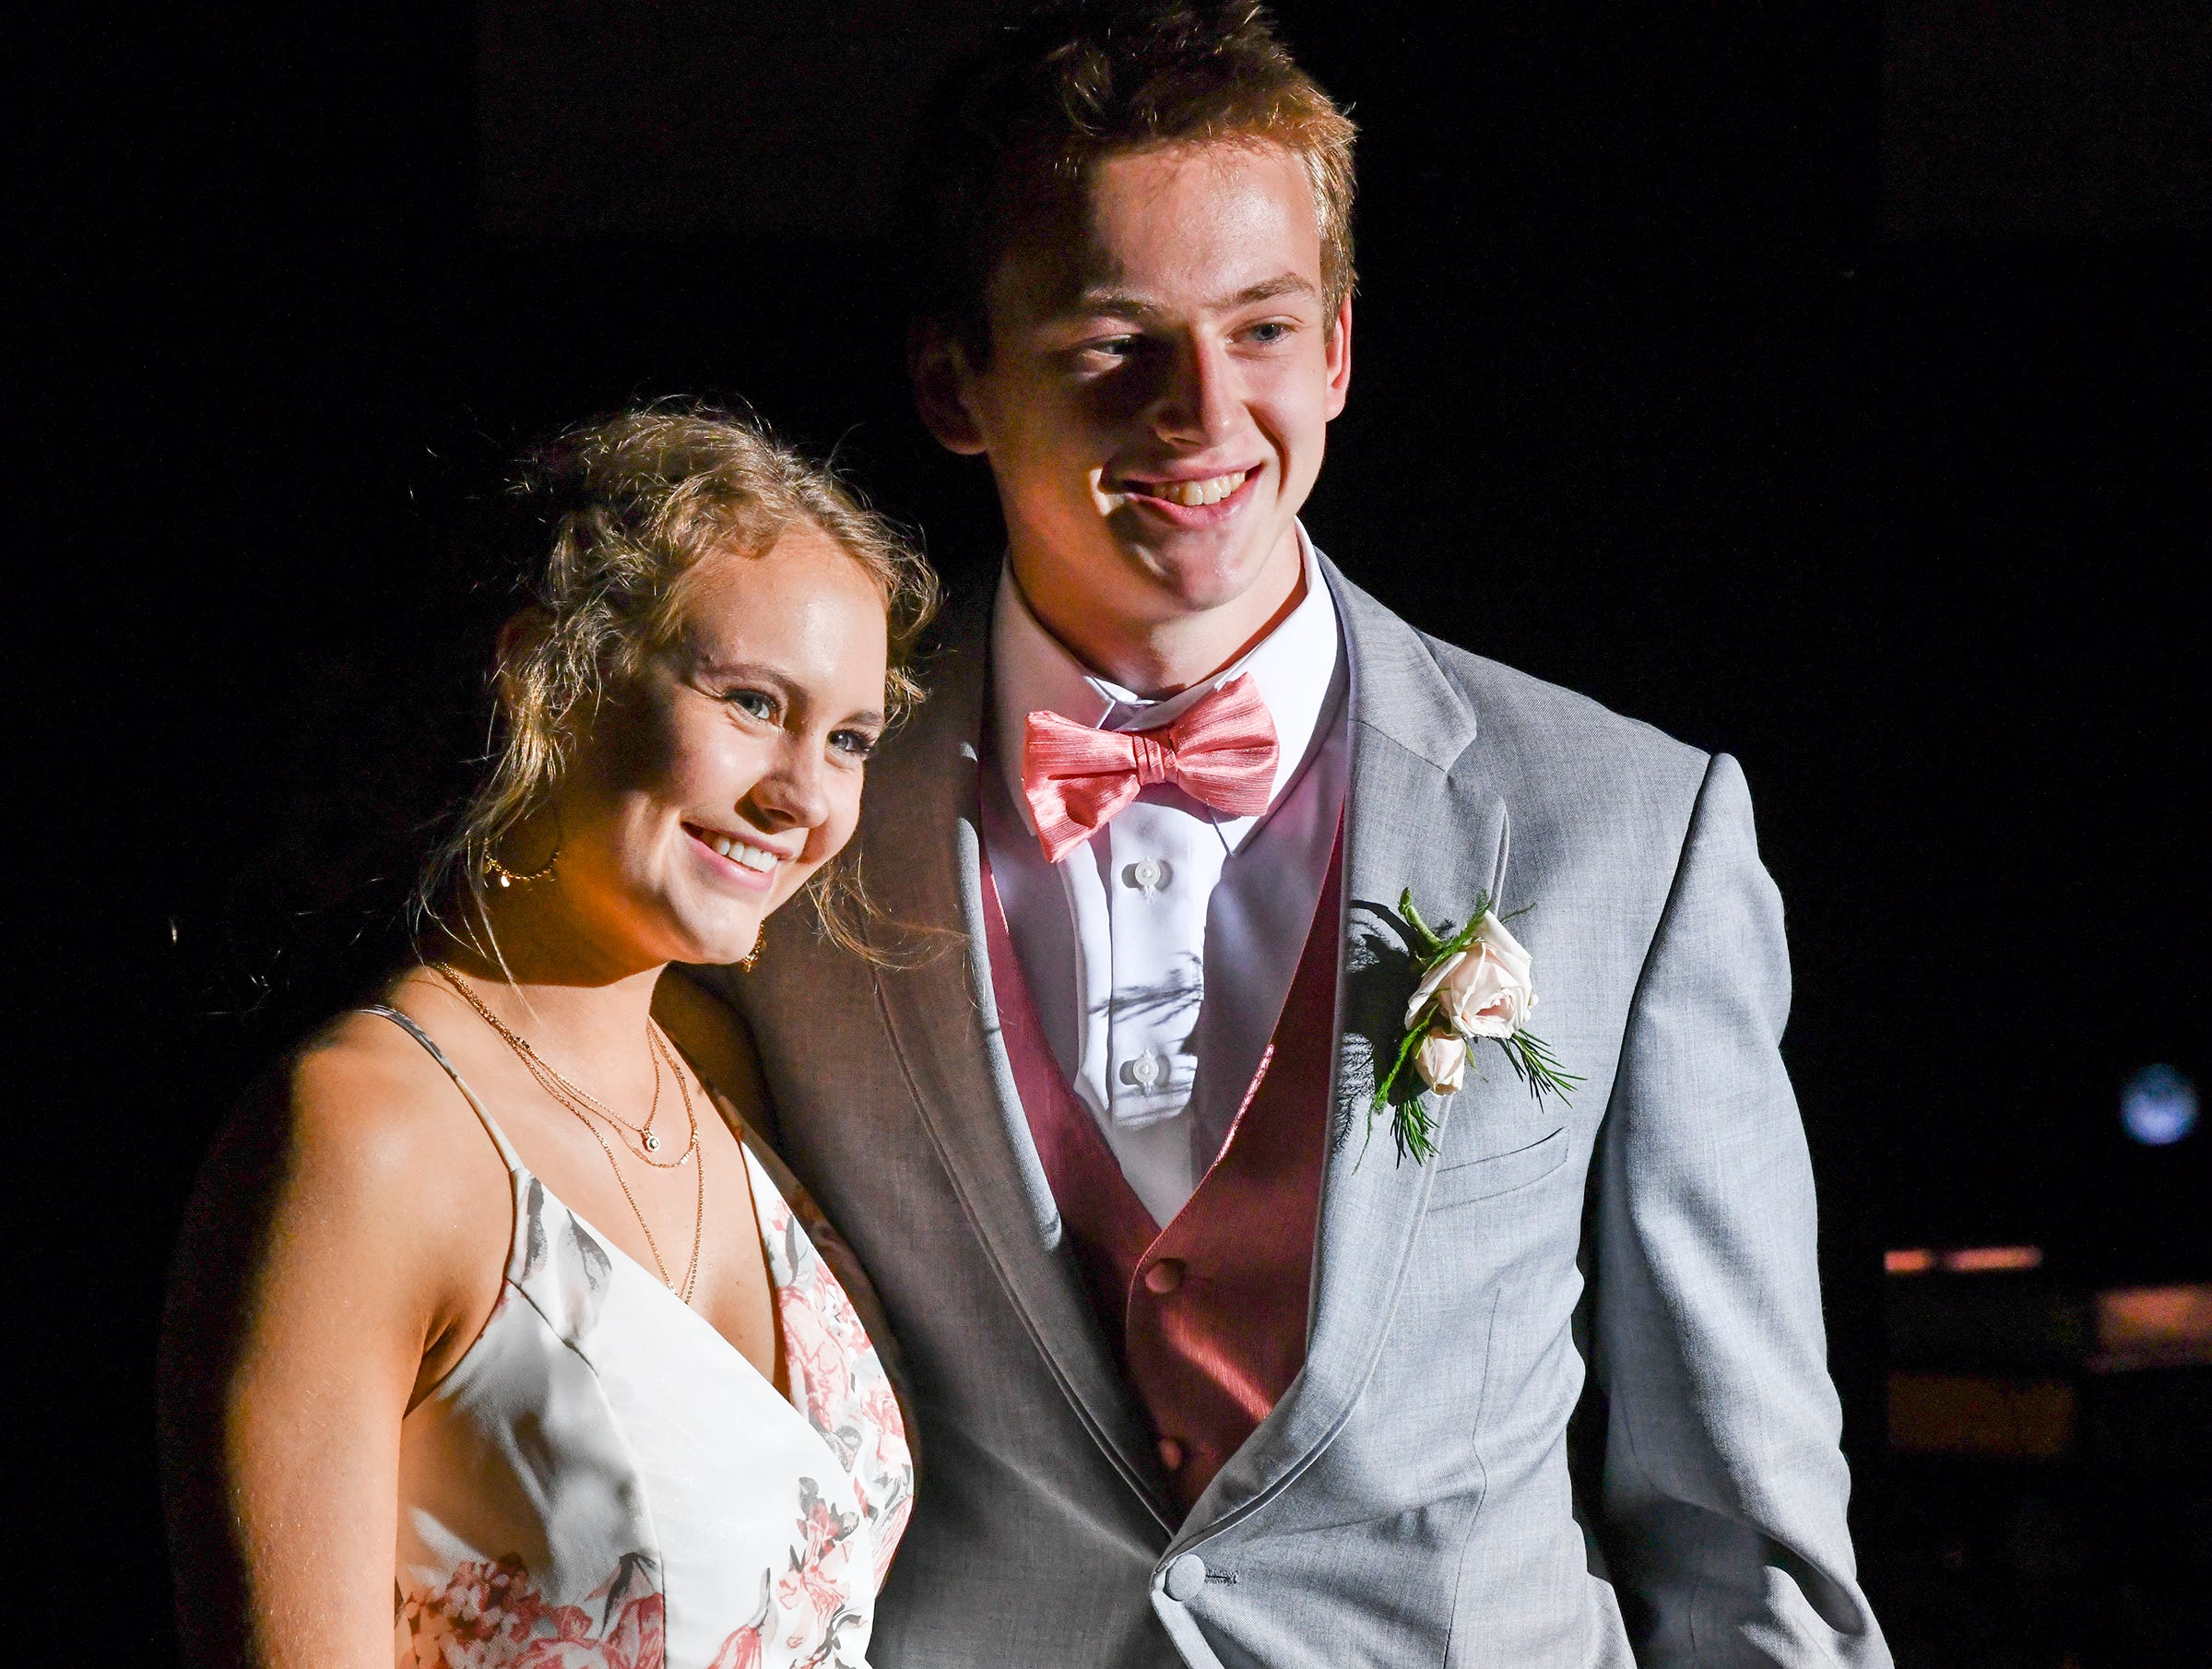 Students smile during their turn at prom grand march Saturday, May 4, at Cathedral High School in St. Cloud.